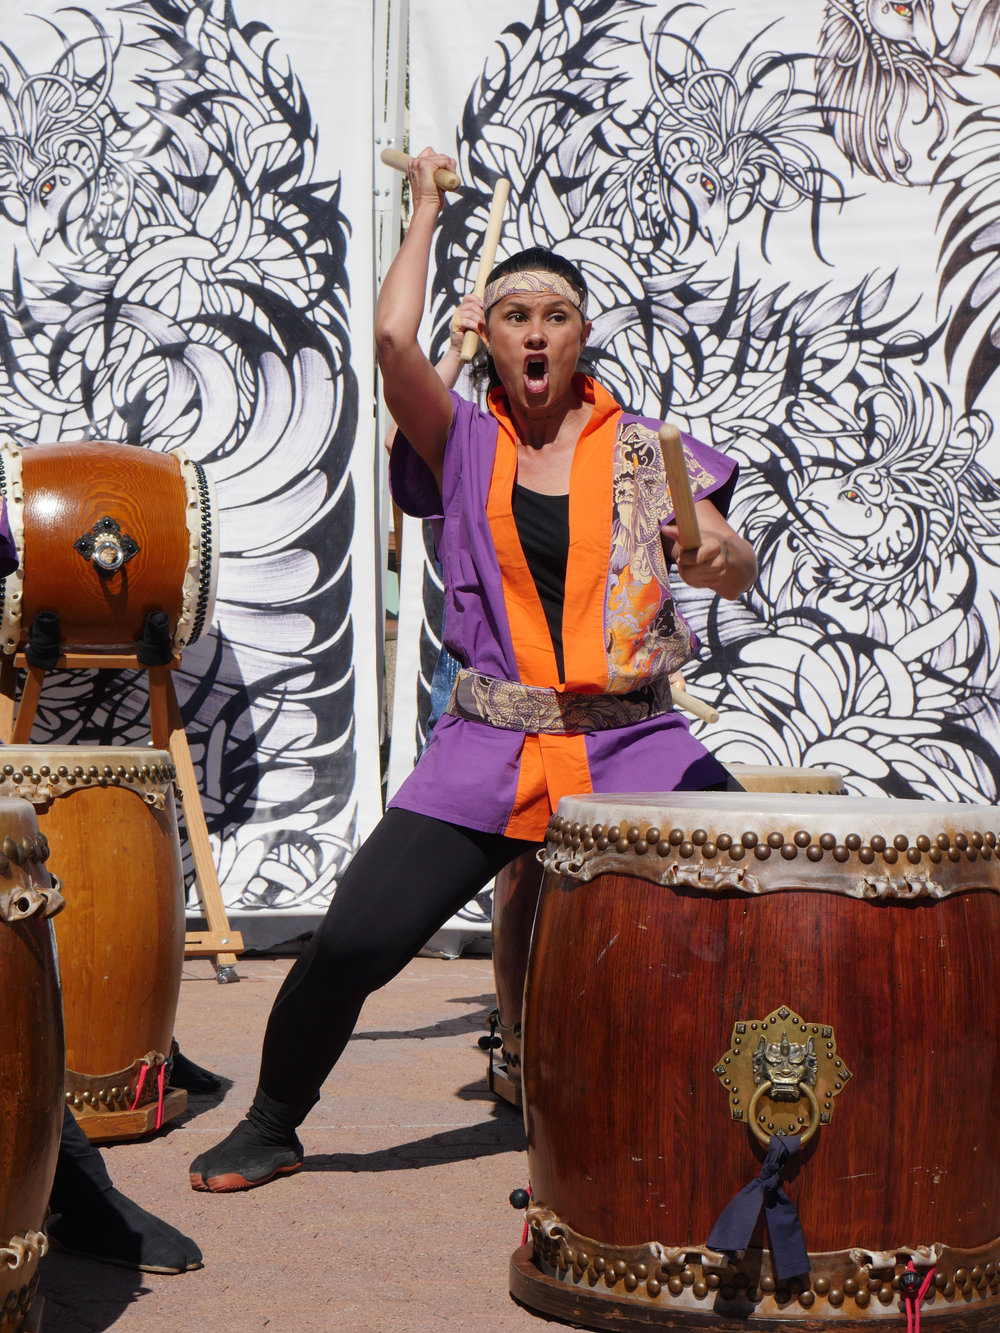 A taiko drummer performs in front of an audience during the 34th Arizona Matsuri Festival of Japan in Phoenix, Ariz. on Feb. 24, 2018.  (Nick Serpa/azcentral)